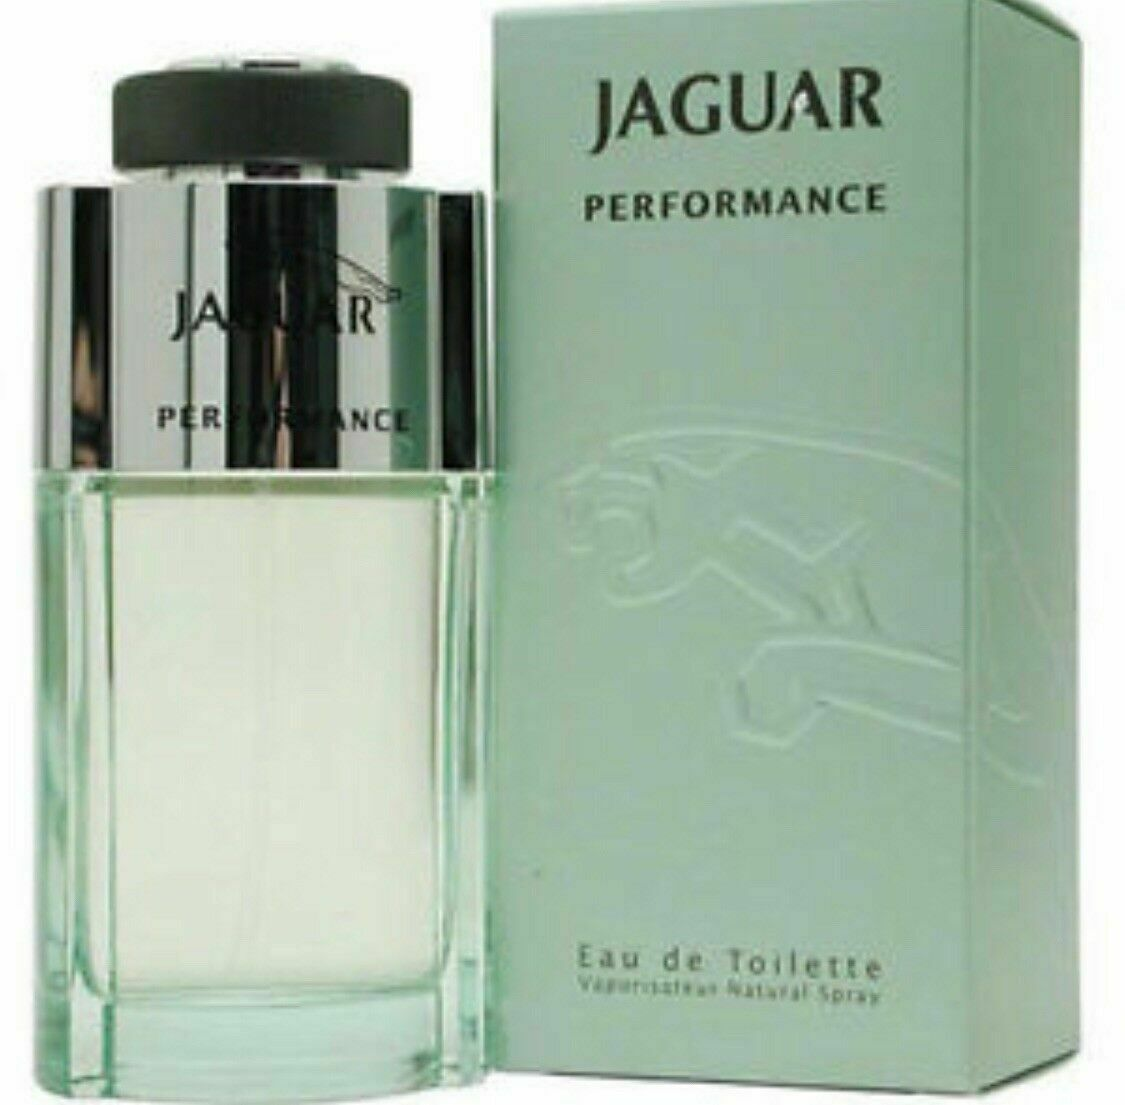 Primary image for Jaguar Performance 3.4 oz / 100ml EDT Eau De Toilette Spray Men Perfume Cologne